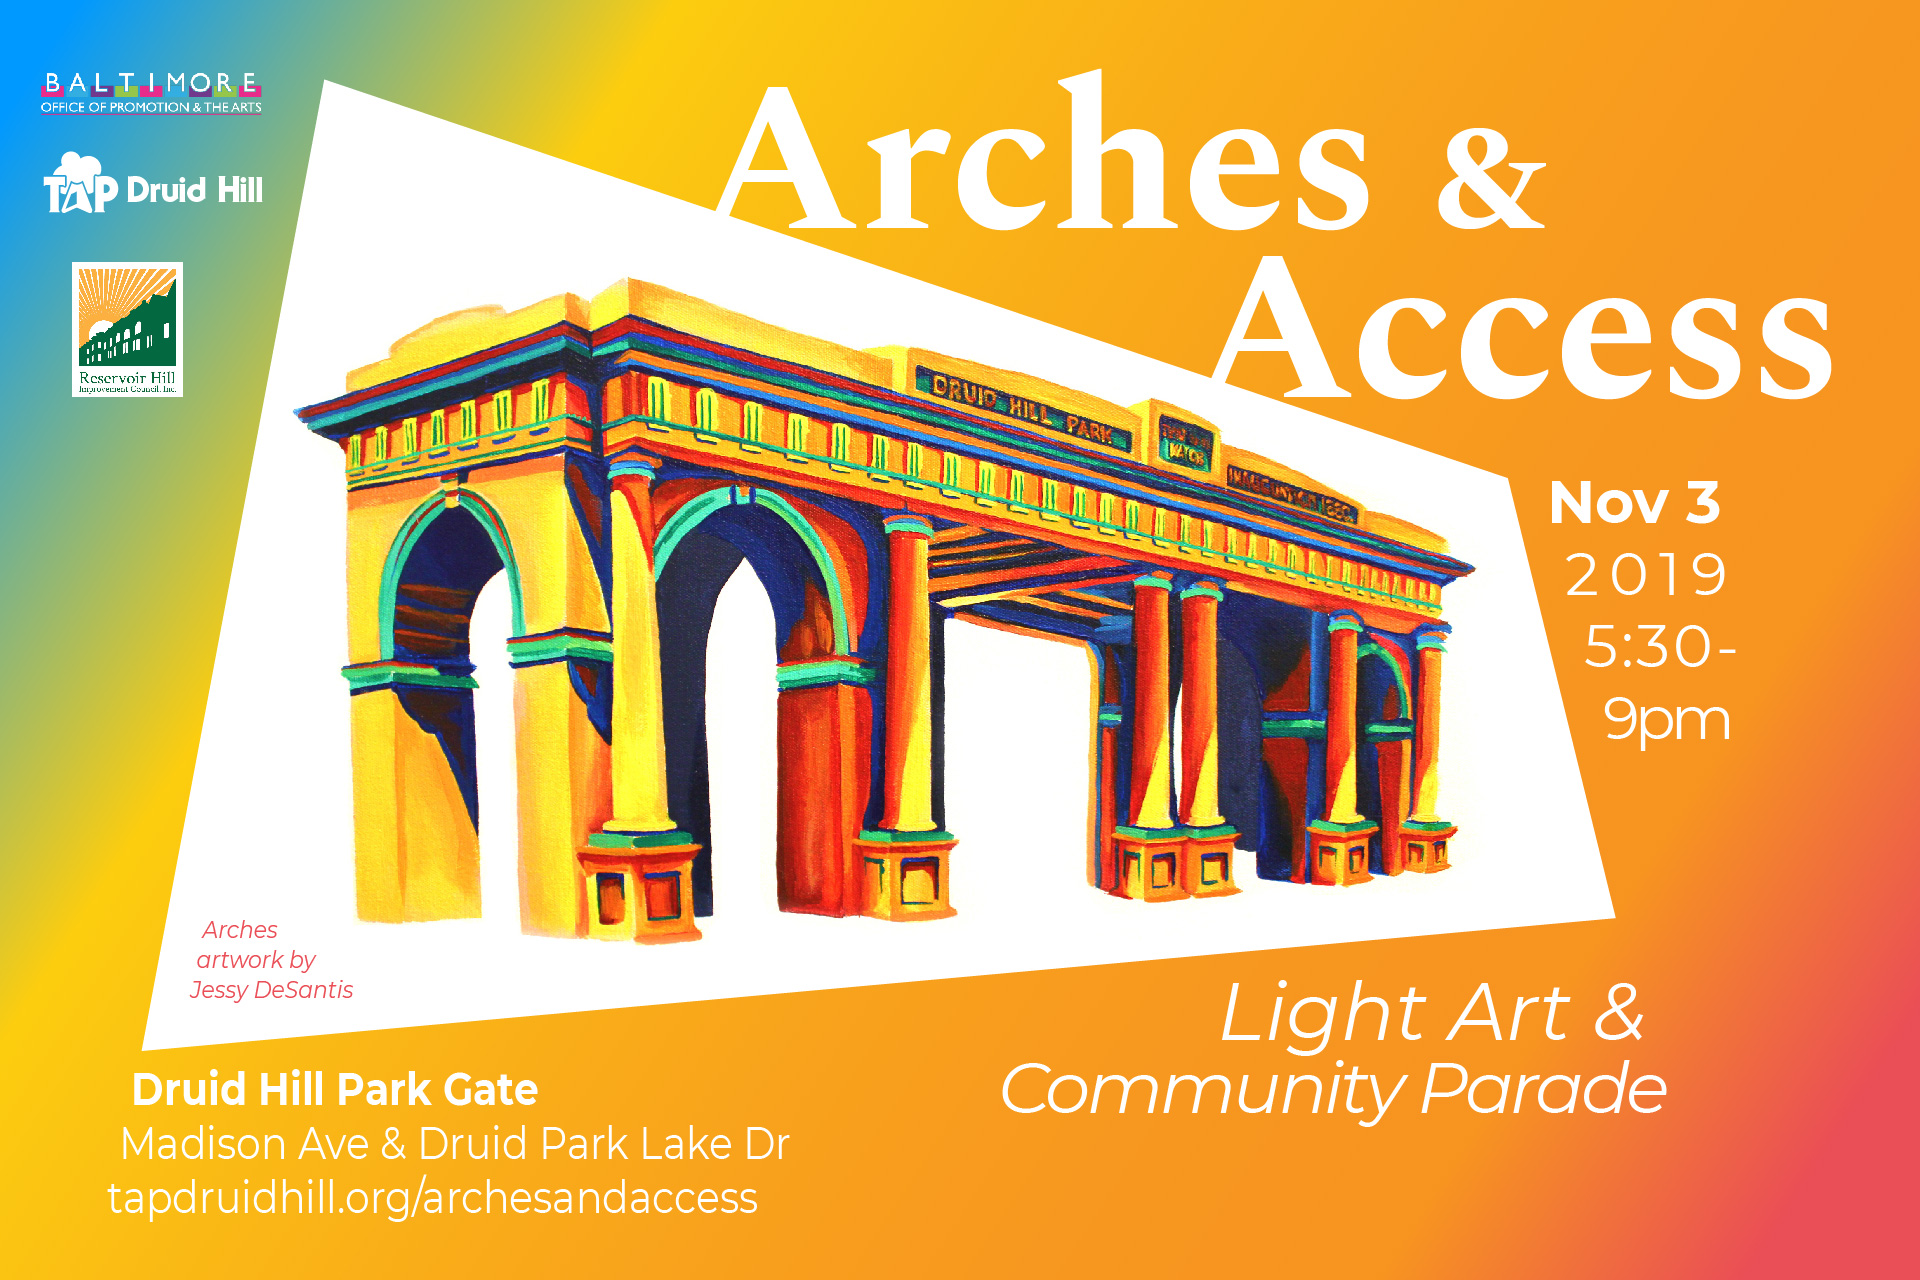 Access & Arches Parade